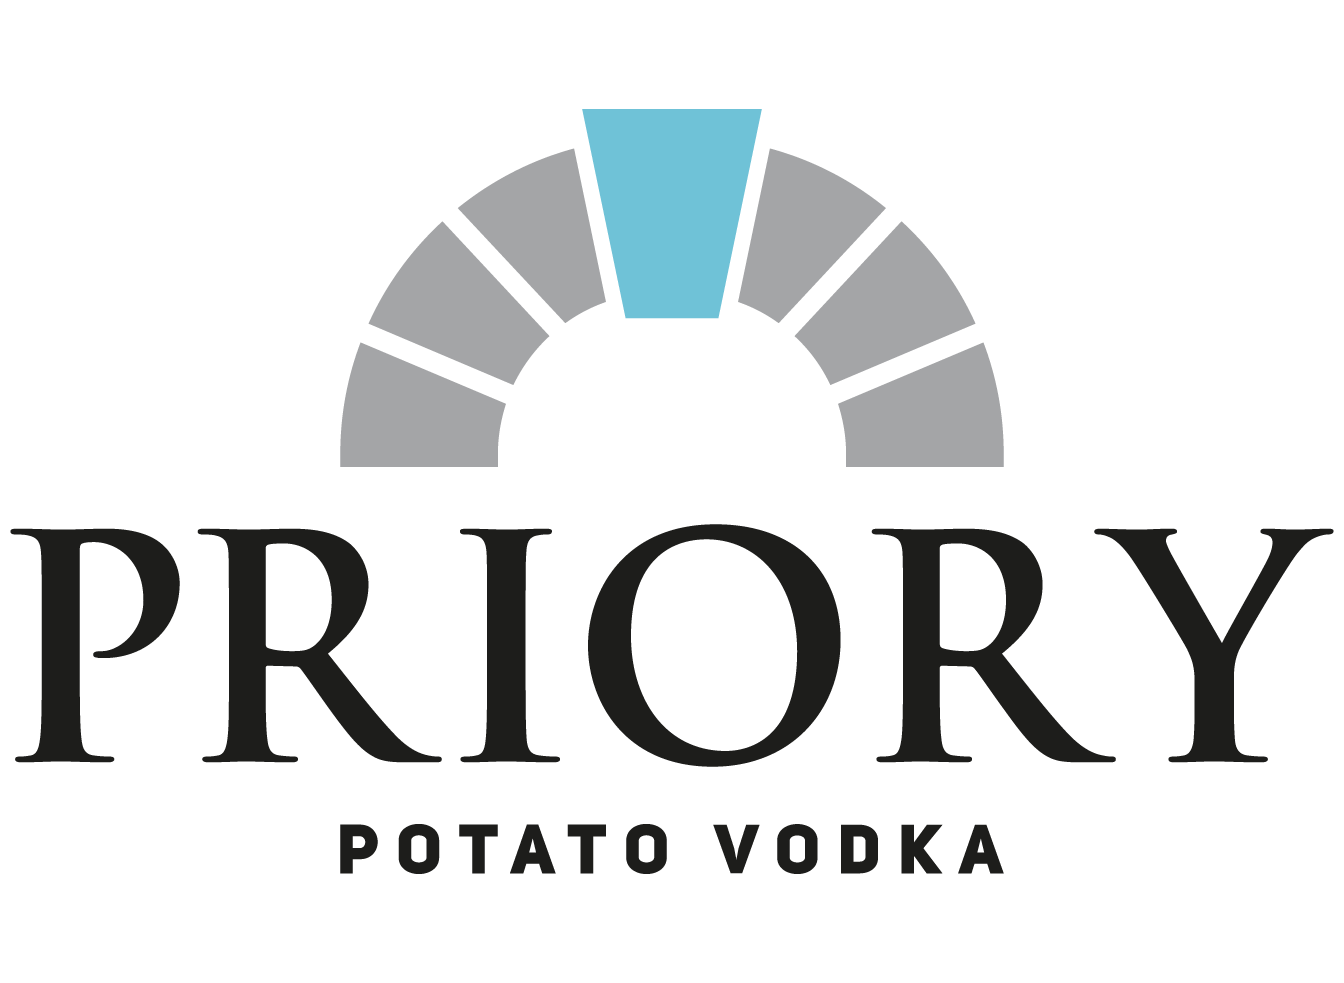 Priory Vodka Image